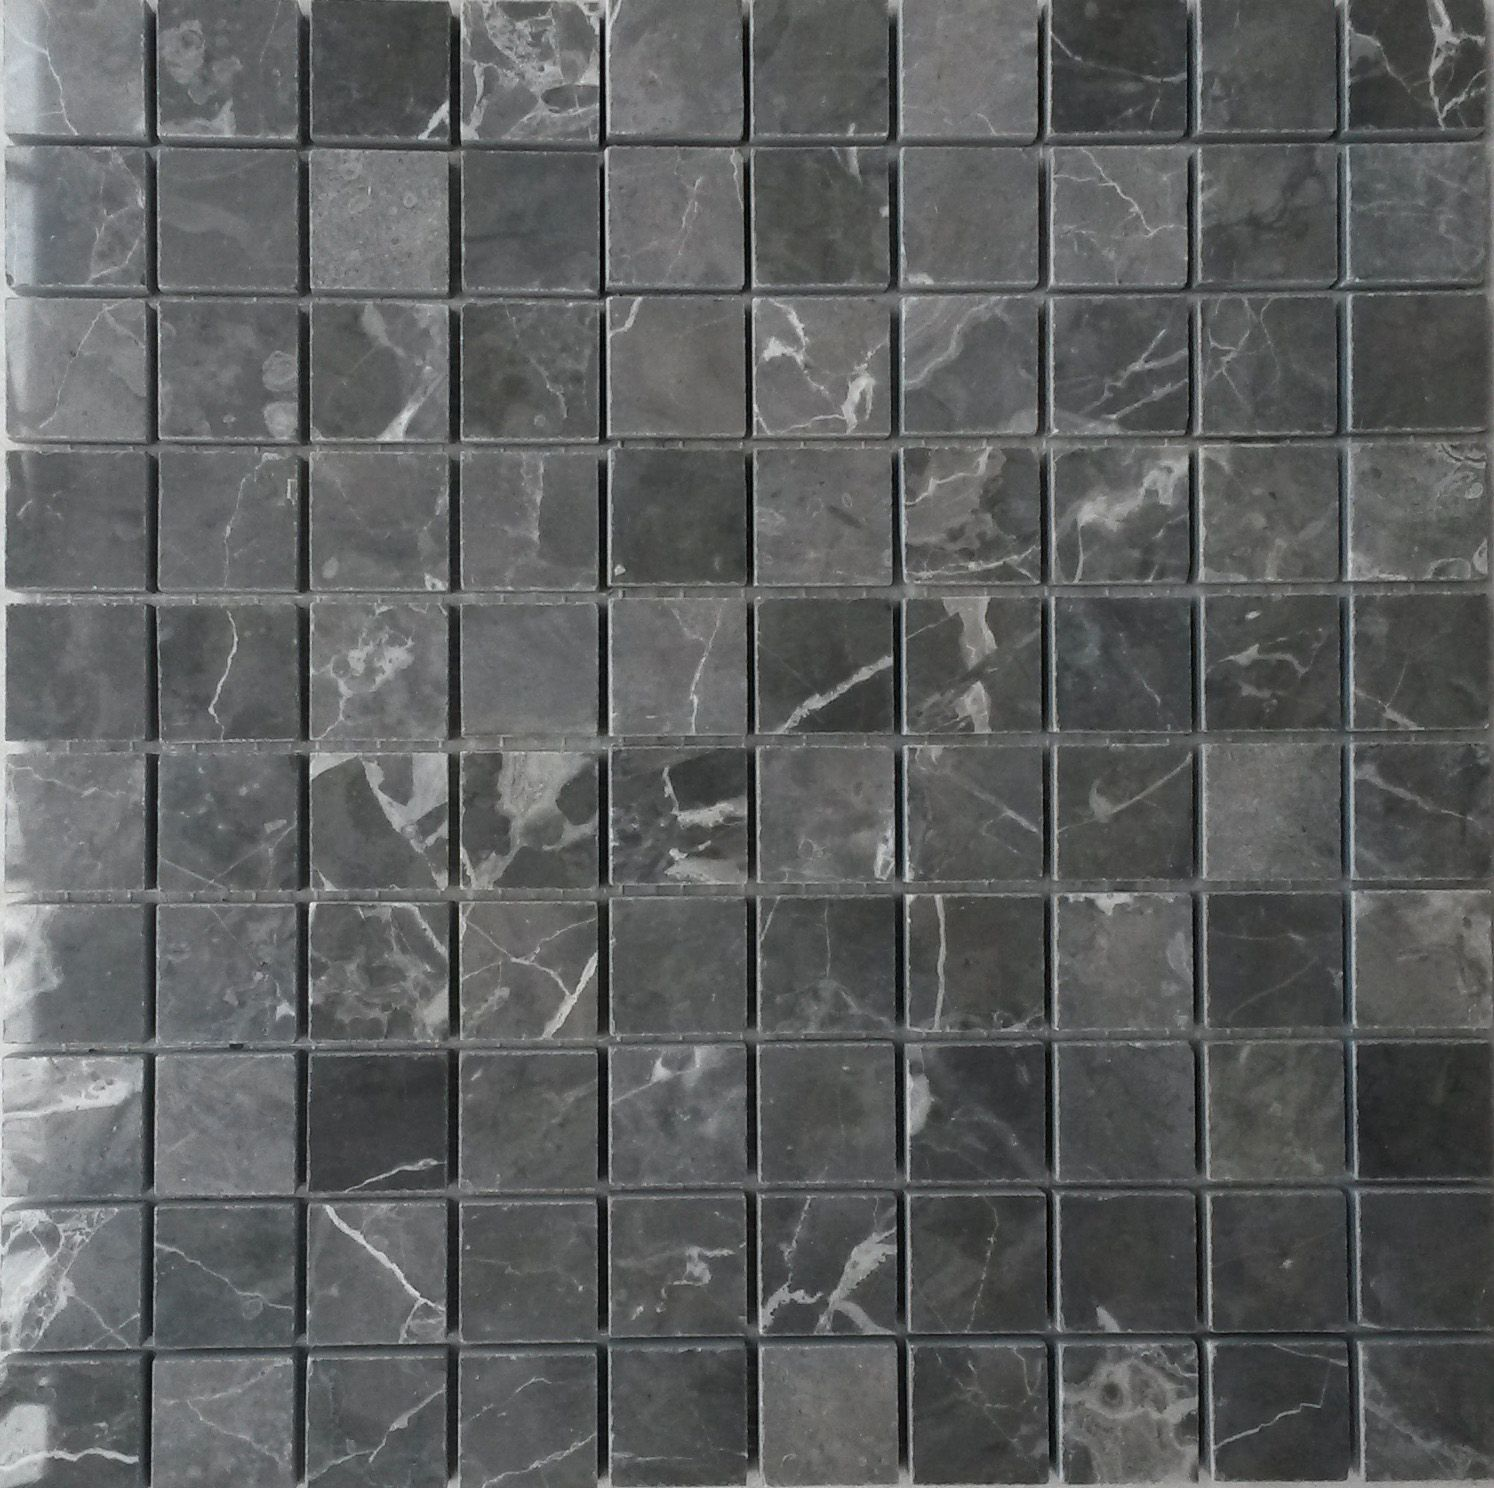 Morano Glacier Tumbled Brick Bond Izmir Grey Mosaic 15mm Arm7535 Material Textures Tiles Texture Brick Bonds